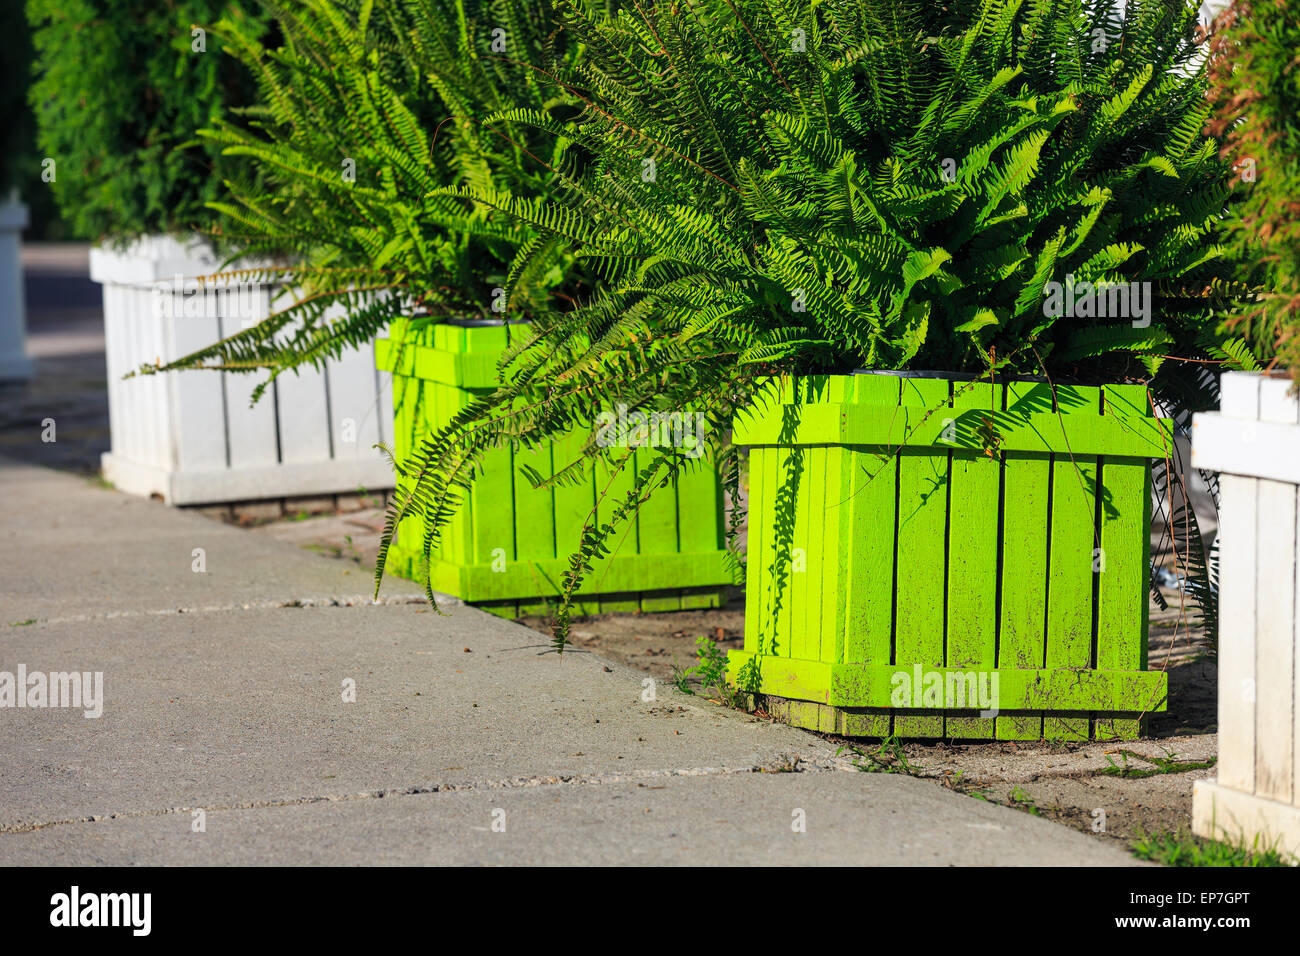 Wooden planter boxes with ferns along a sidewalk. - Stock Image